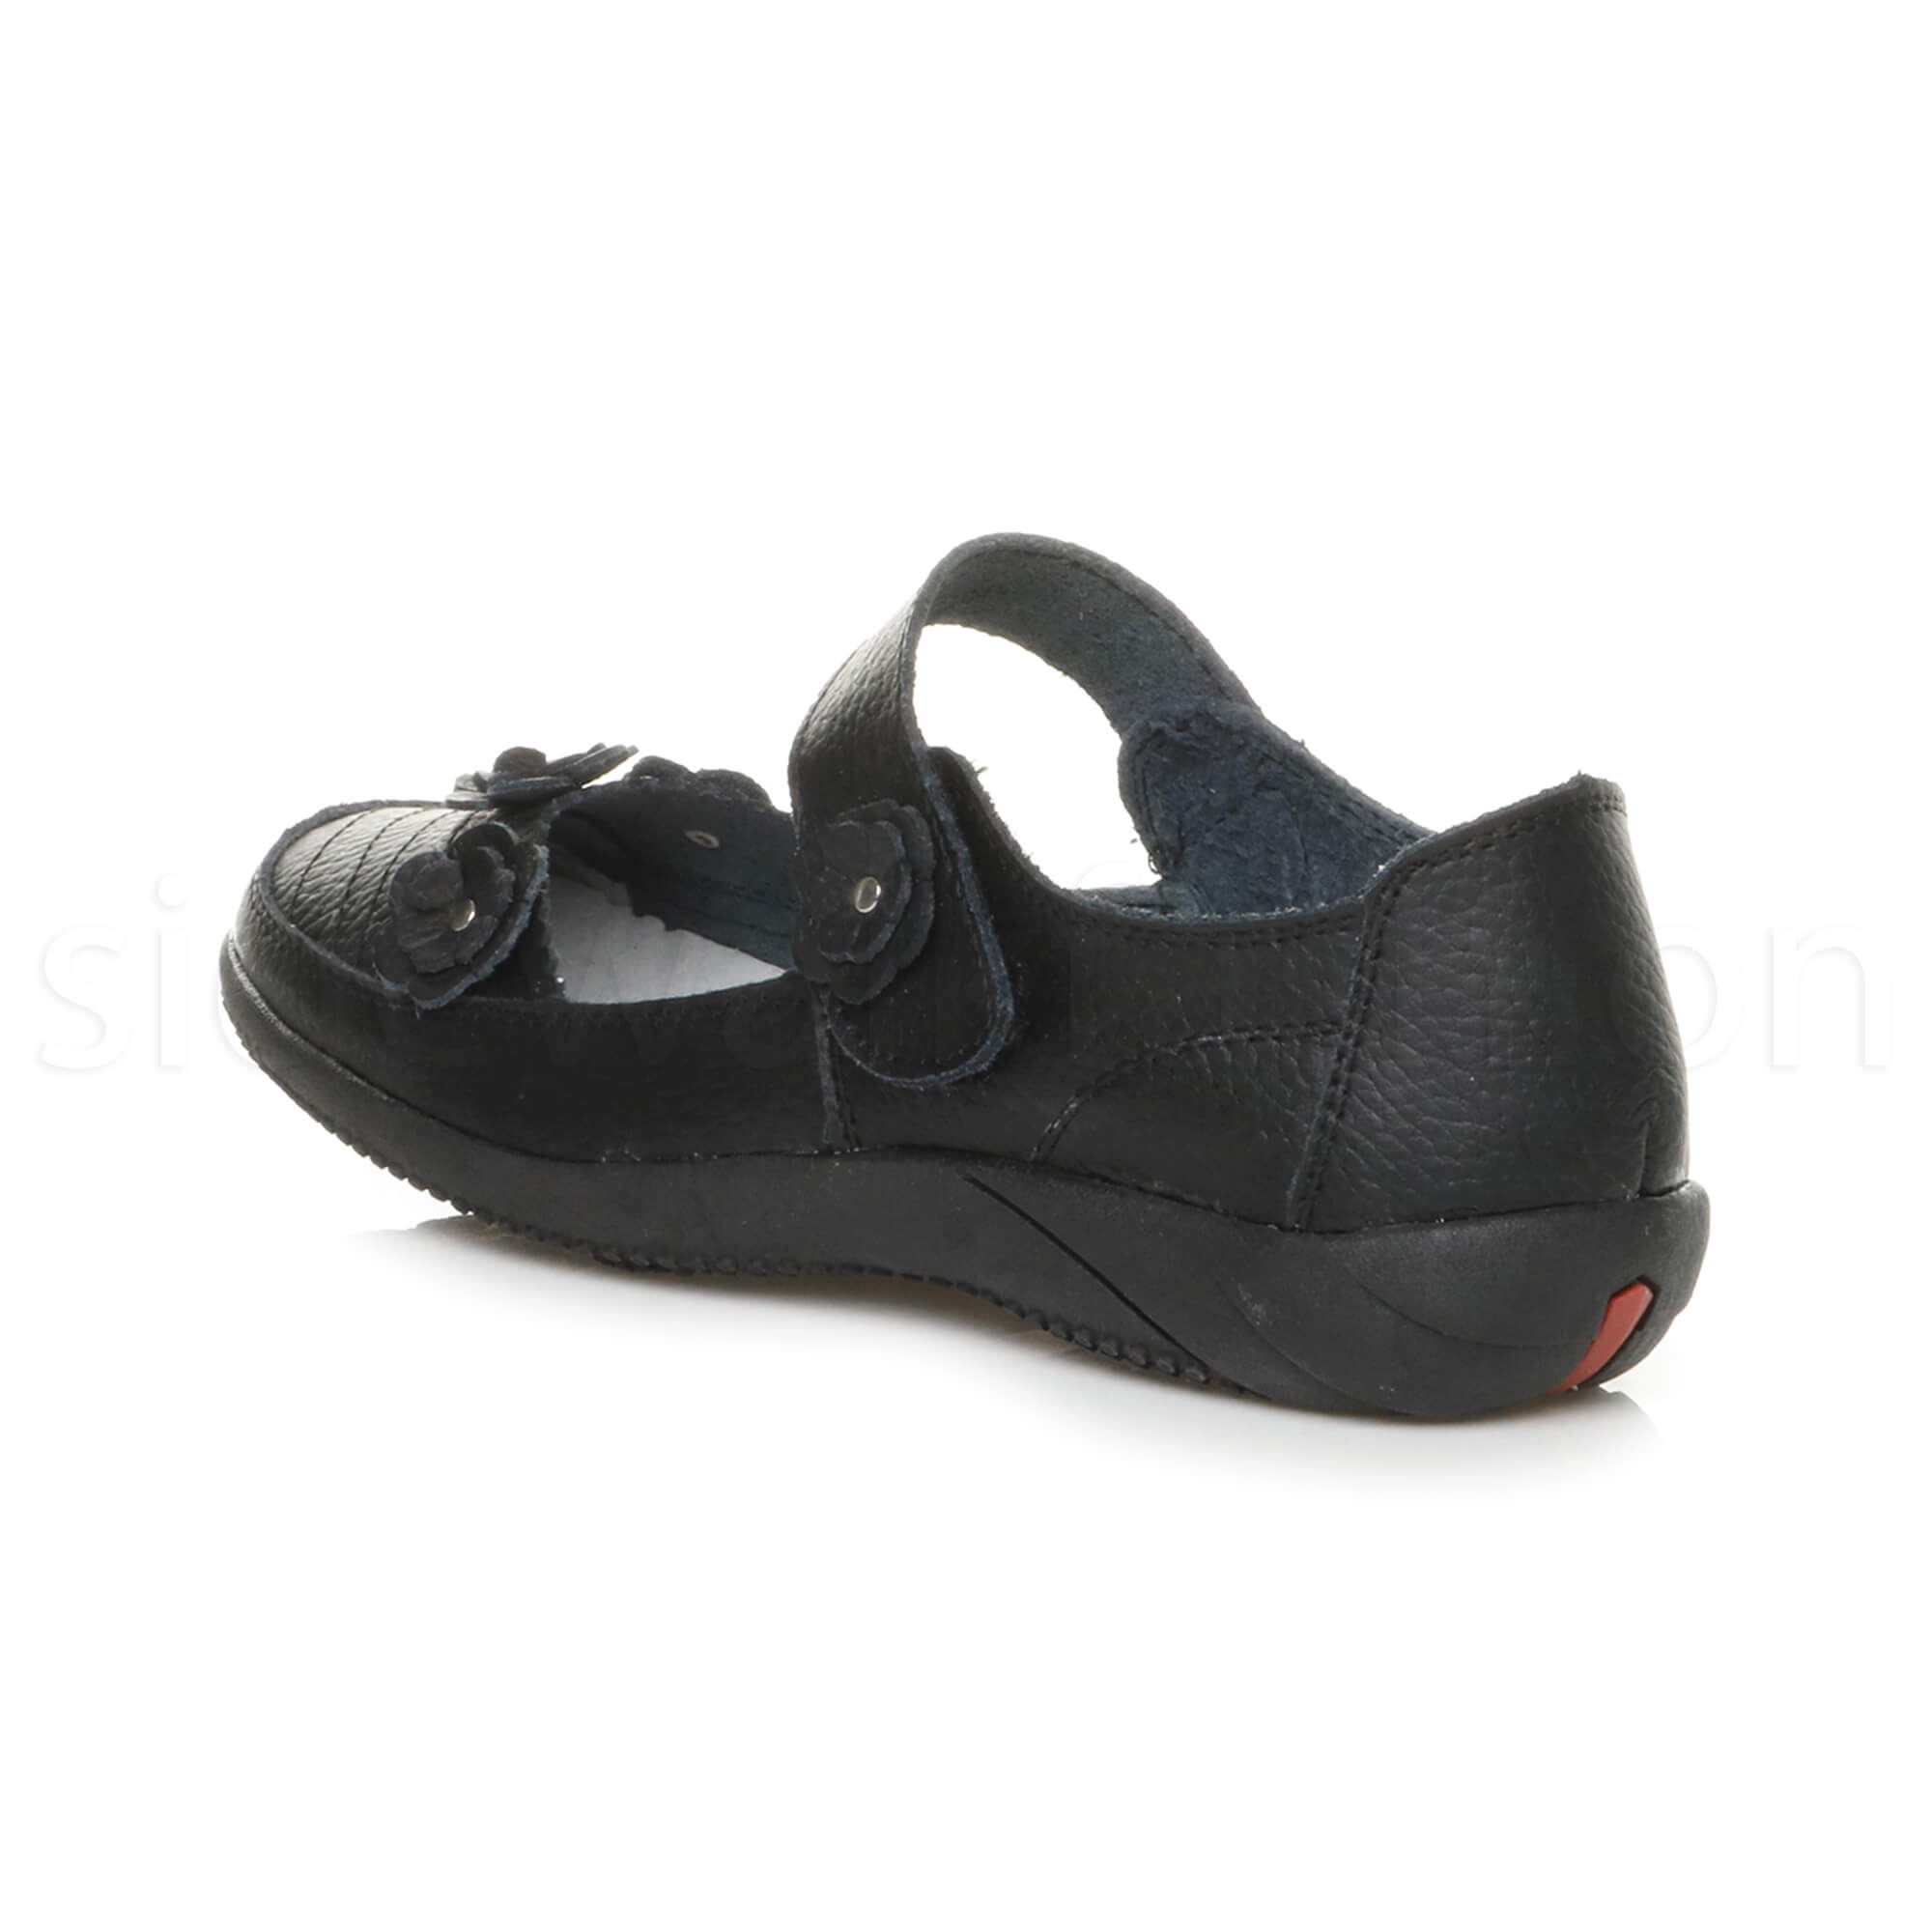 Womens-ladies-leather-comfort-walking-casual-sandals-mary-jane-strap-shoes-size thumbnail 10